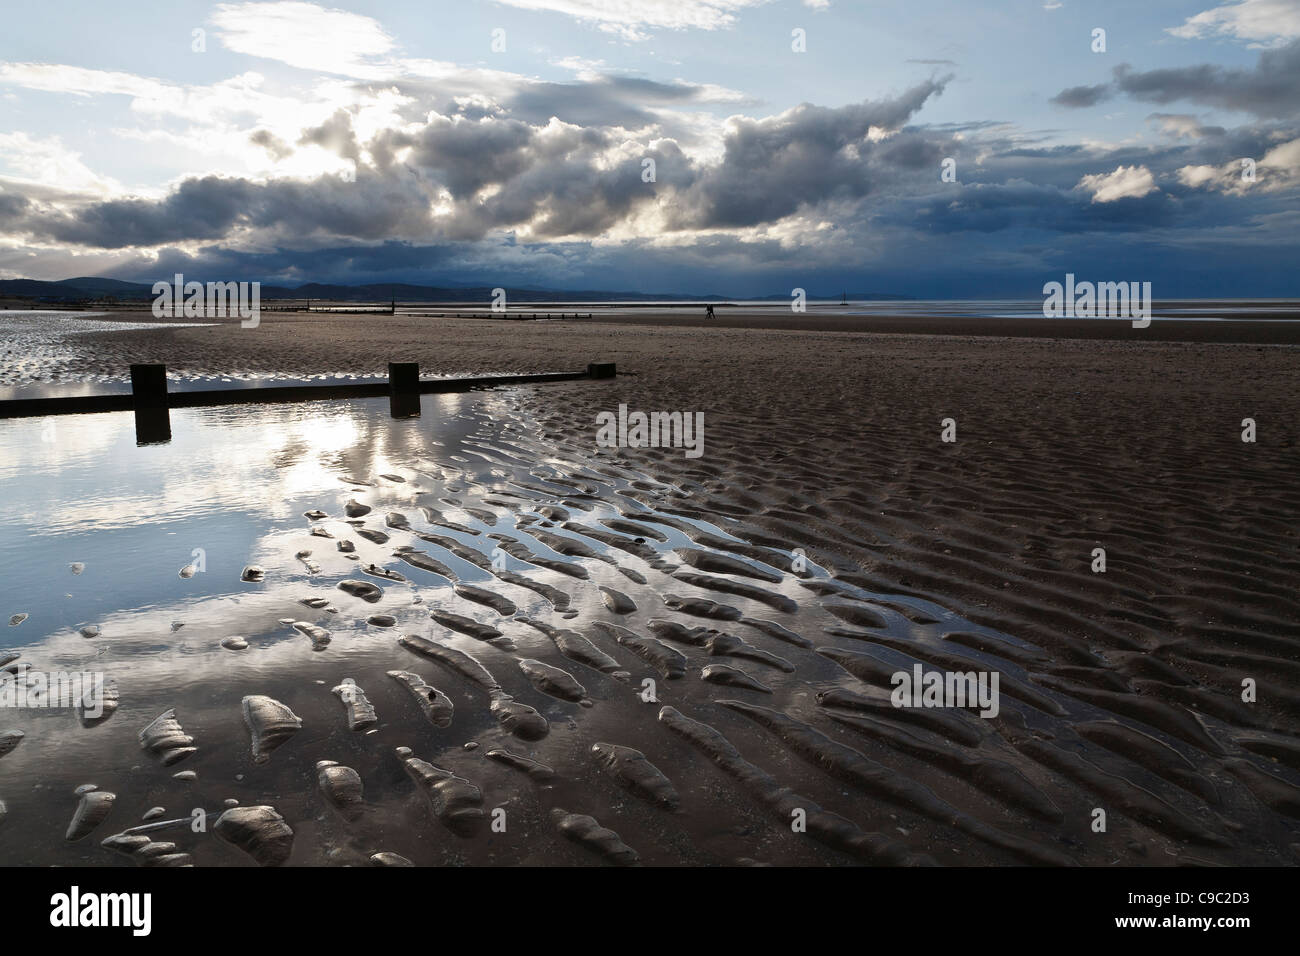 The beach at Rhyl, practically deserted off-season. - Stock Image